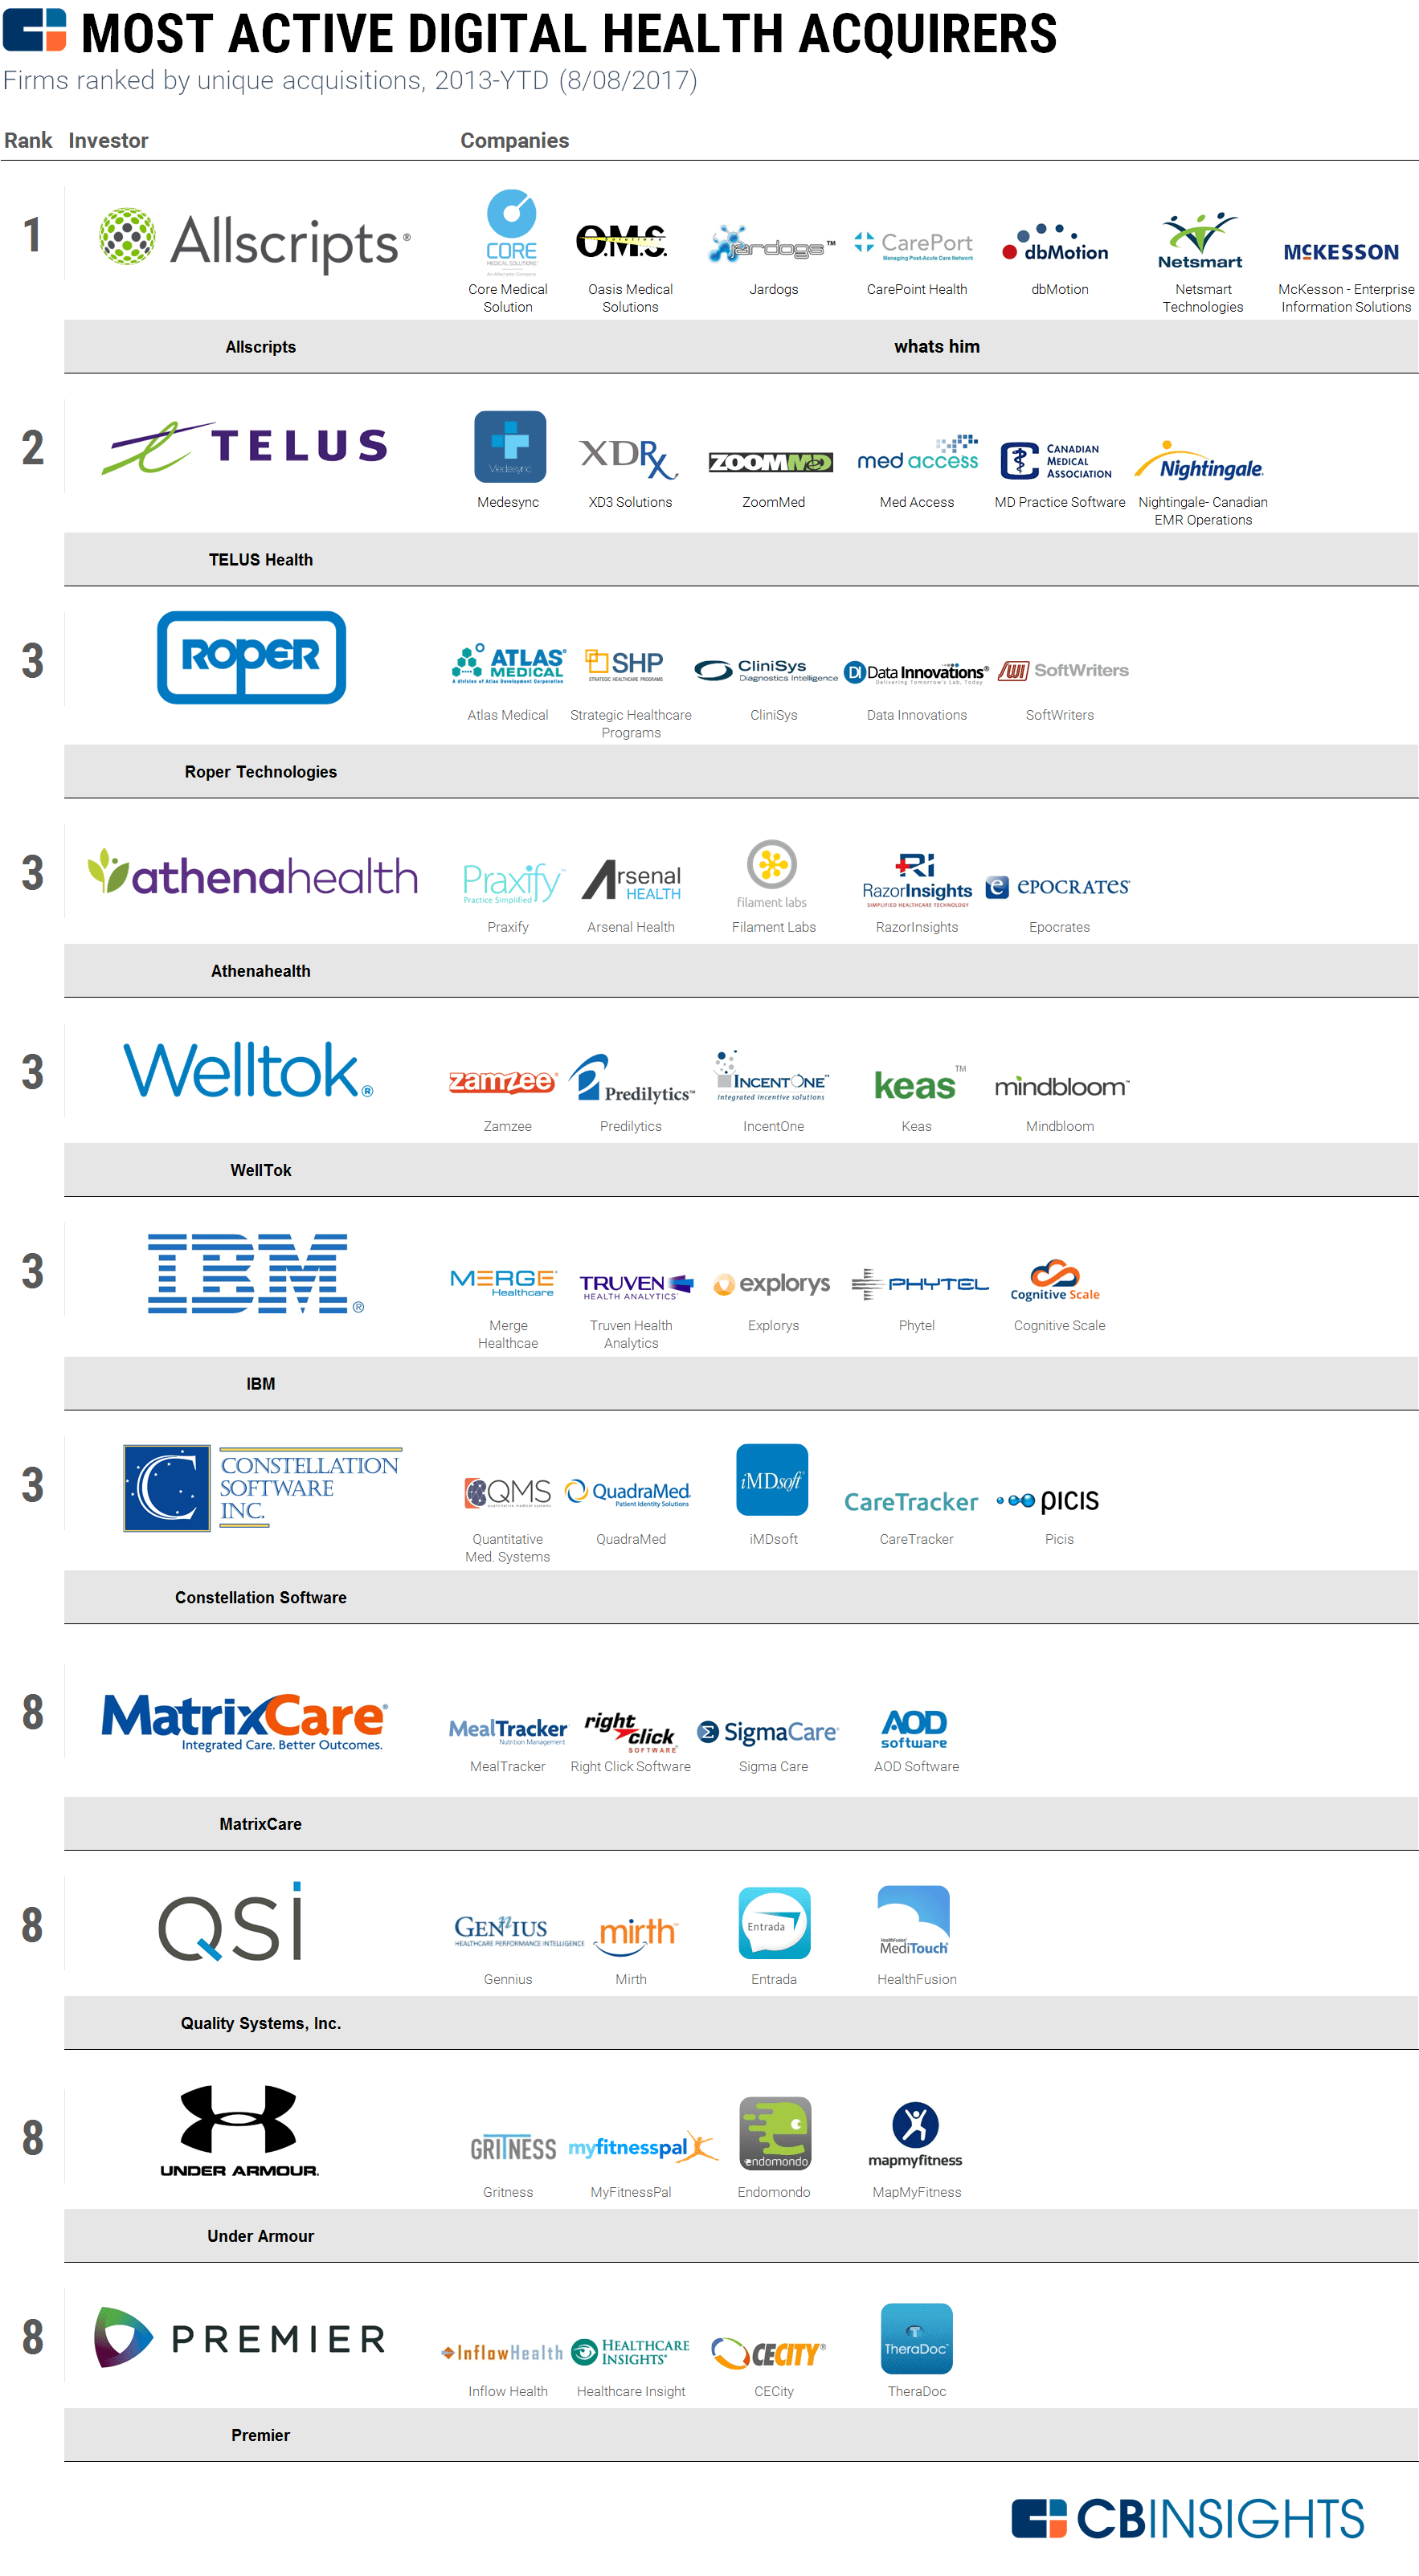 Digital Health Acquirers By CB Insights